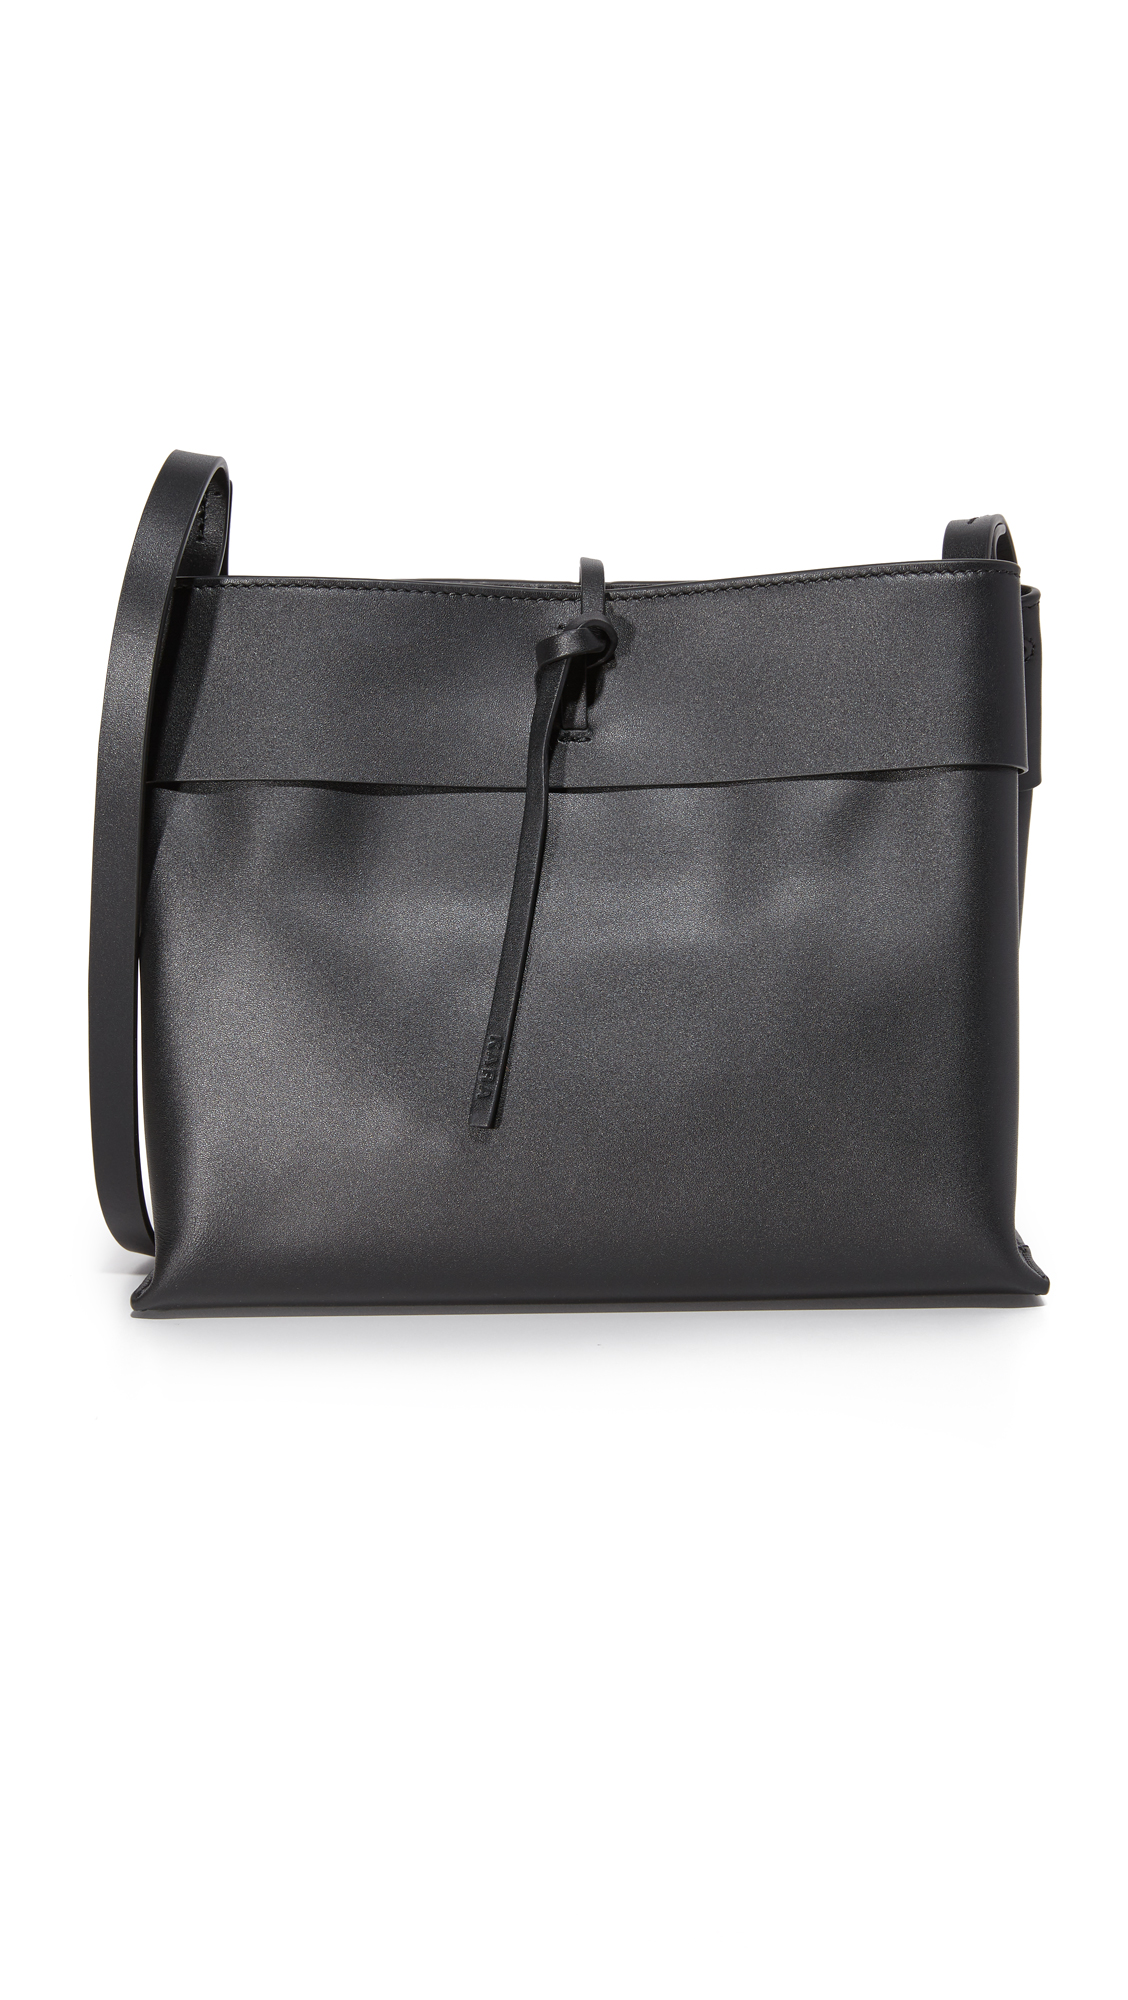 KARA Tie Cross Body Bag - Black